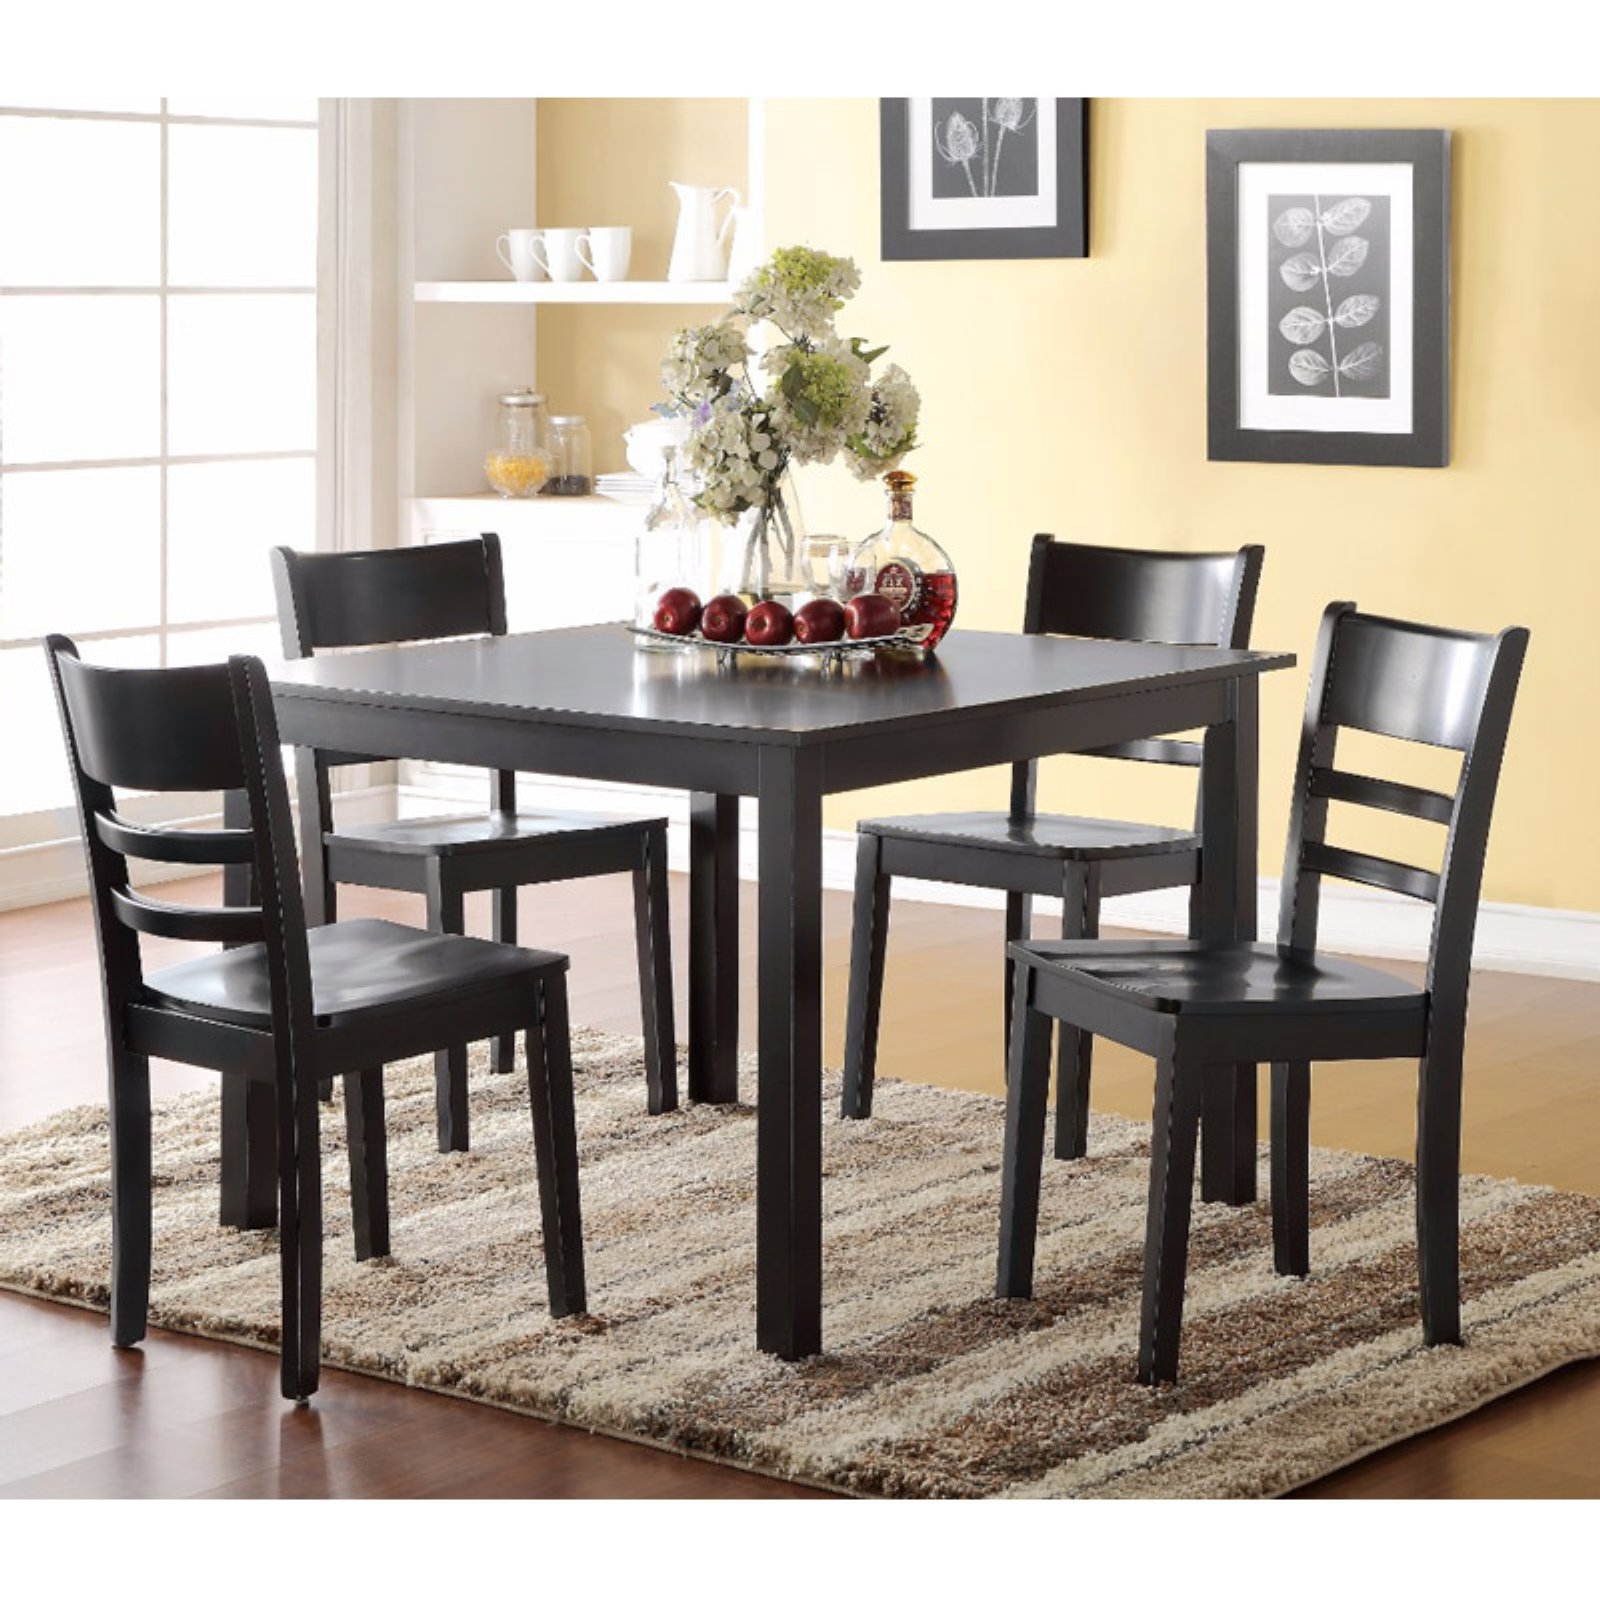 Most Recently Released Benzara Gracious 5 Piece Square Dining Table Set In 2019 Within Transitional 4 Seating Drop Leaf Casual Dining Tables (View 11 of 30)